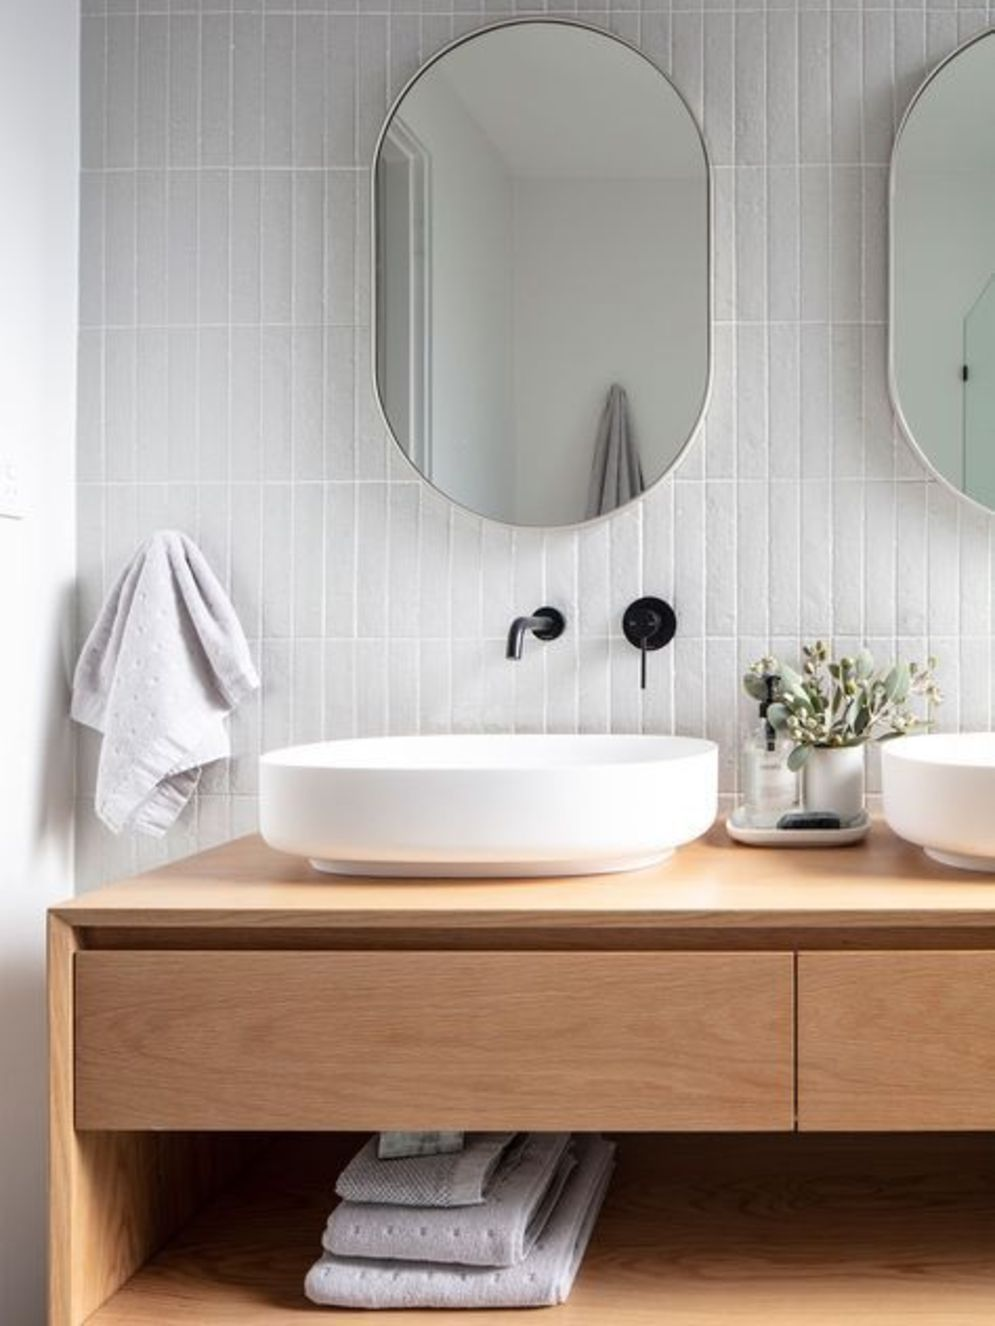 Most savvy bathroom designs with elegant wood finish to give more natural feel Image 9